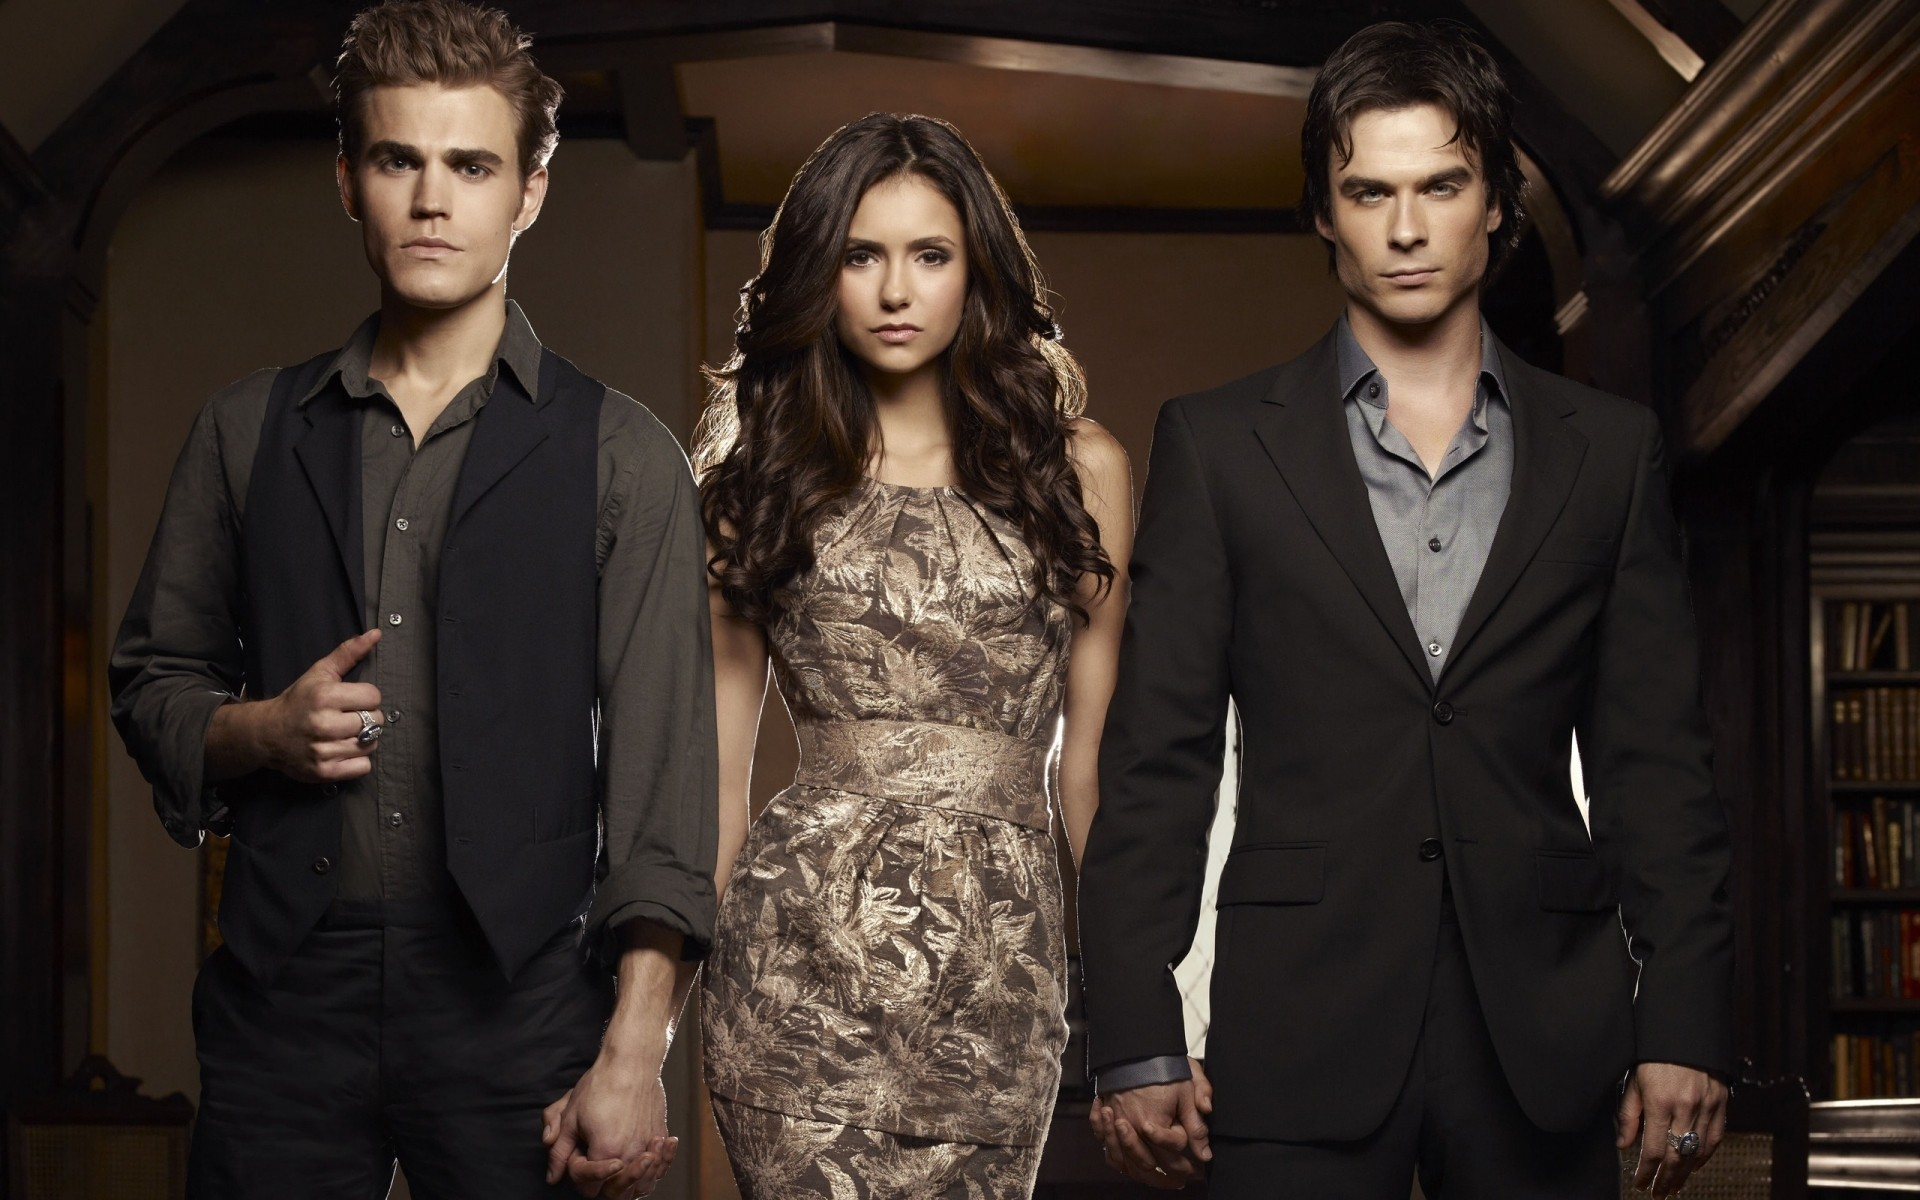 The vampire diaries pics android wallpapers for free voltagebd Gallery